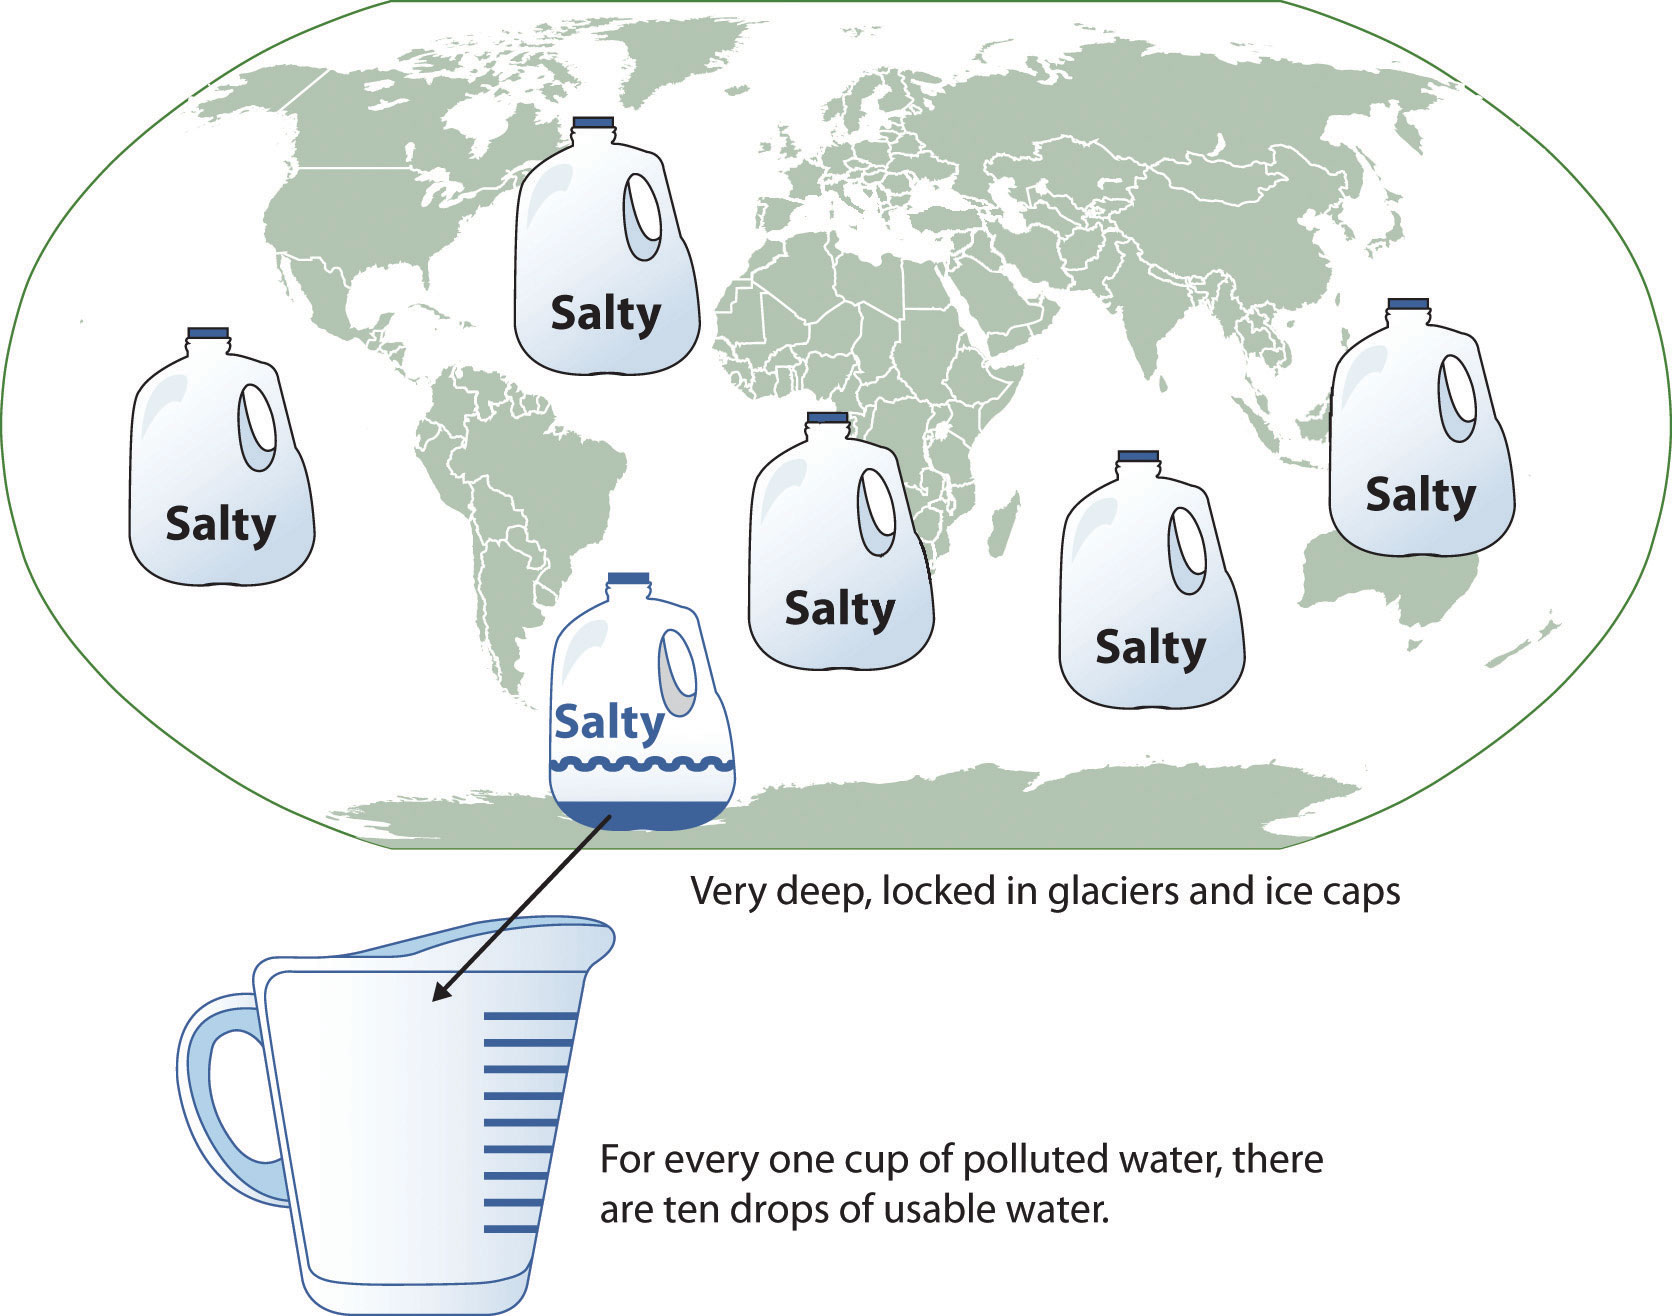 Planetary Water Supply. For every one cup of polluted water, there are ten drops of usable water.